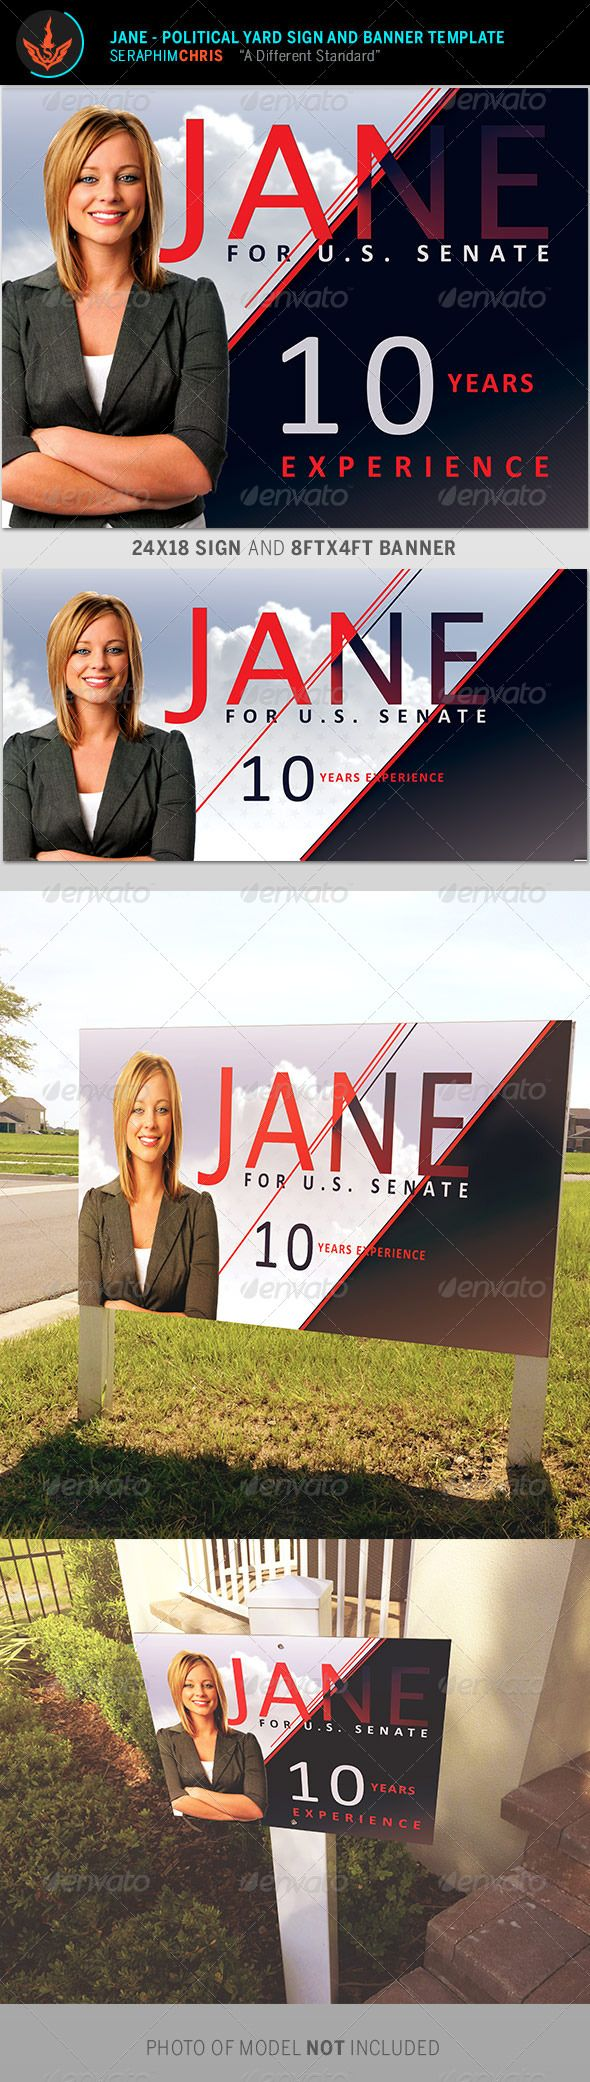 Jane Political Yard Sign and Banner Template - Signage Print Templates